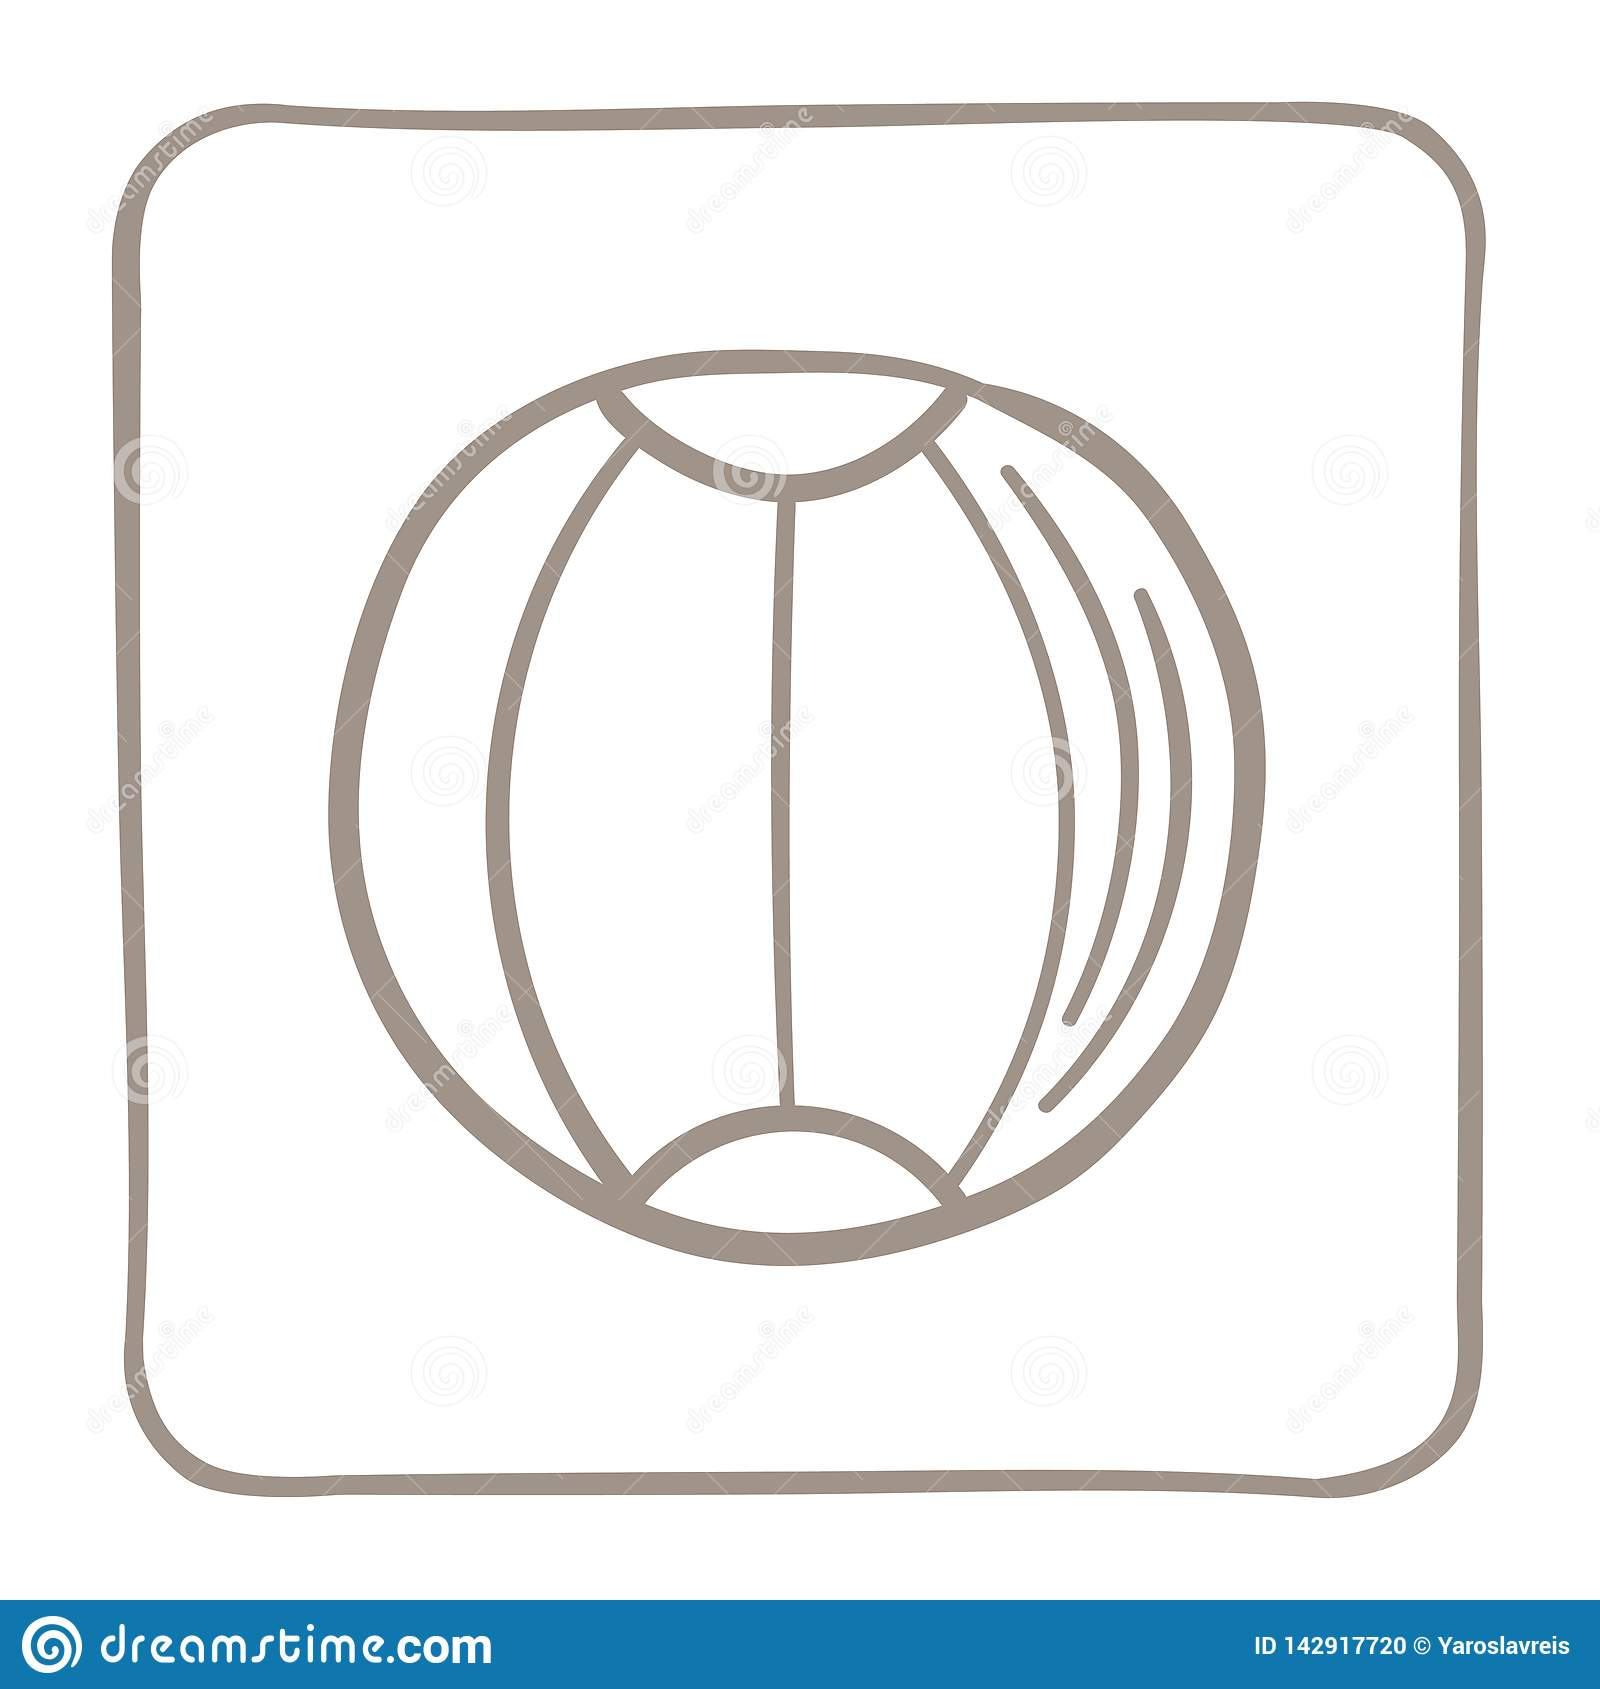 Beach ball Icon in a light brown frame. Vector graphics.